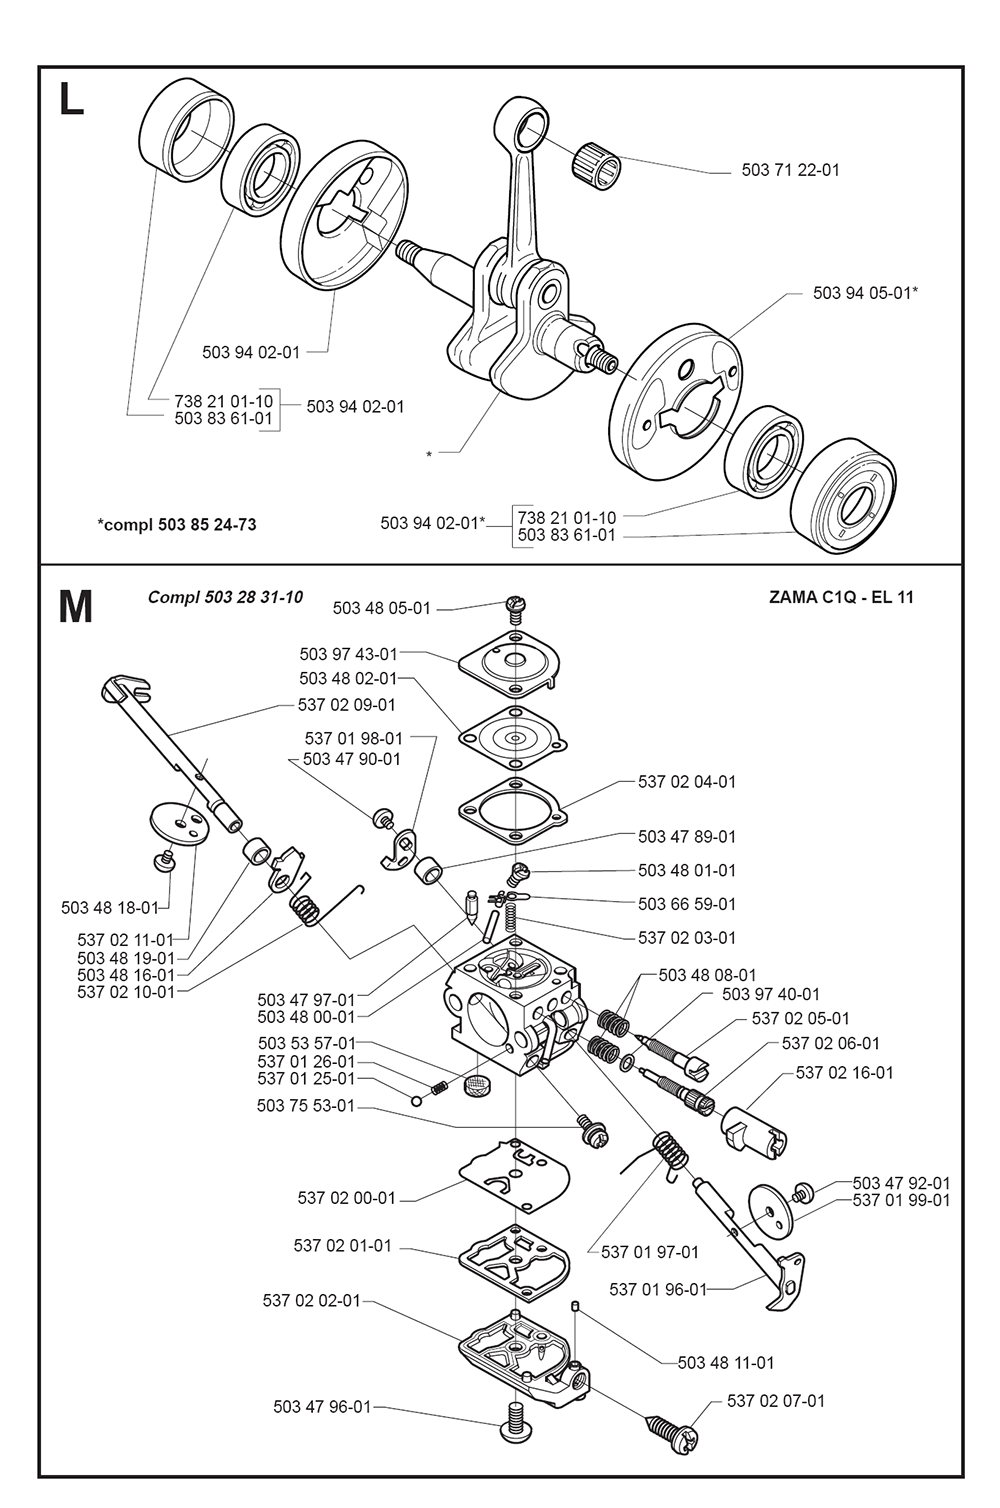 325 L-XT-SERIES-(I0000013)-Husqvarna-PB-5Break Down